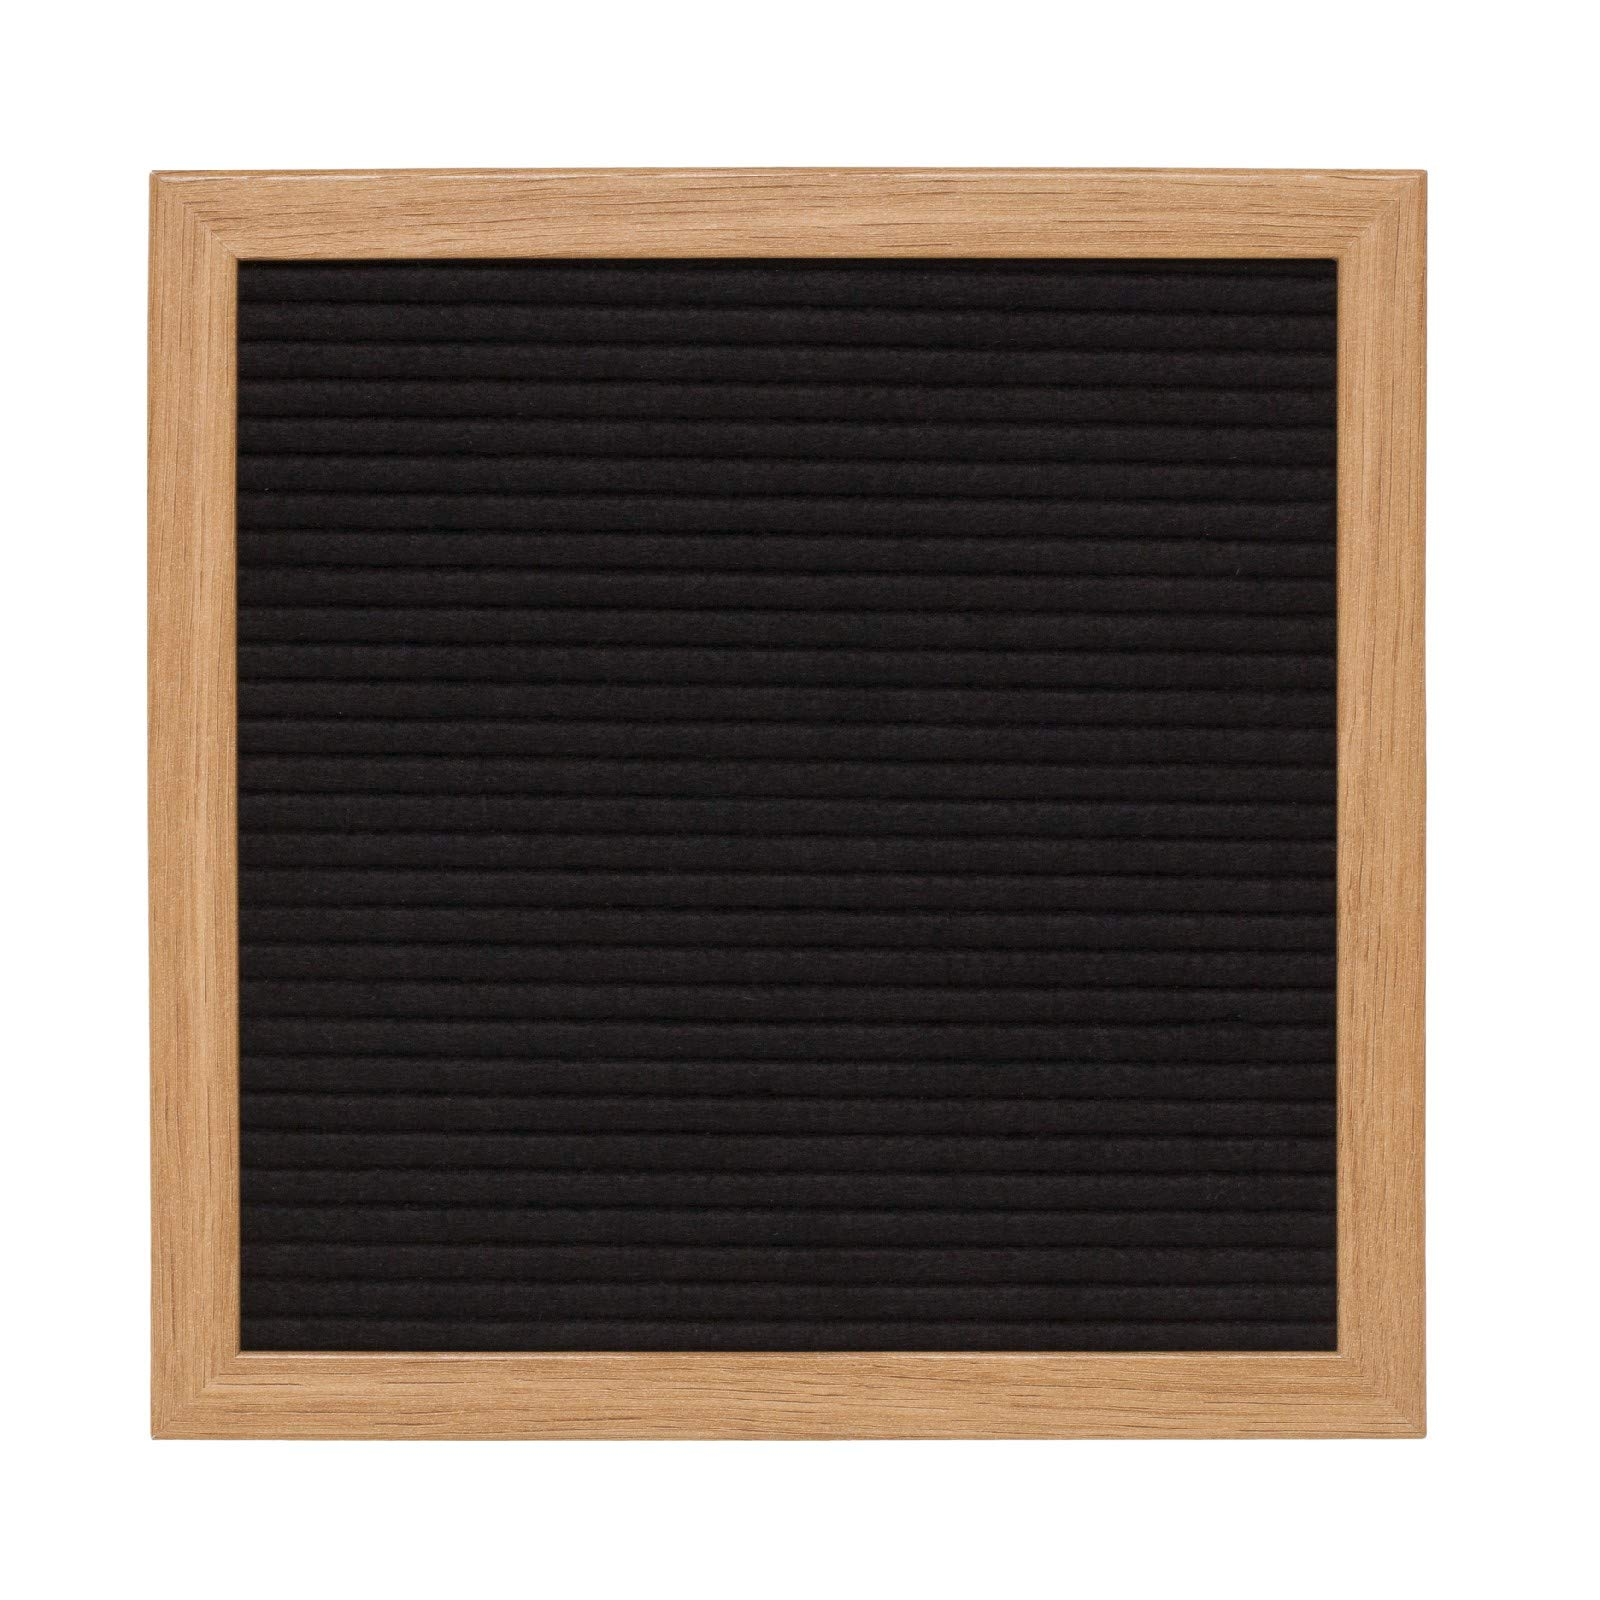 Black Felt Letter Board 10x10 inches. Includes 290 Changeable Letters & Symbols Free Bonus Bag to Store Letters